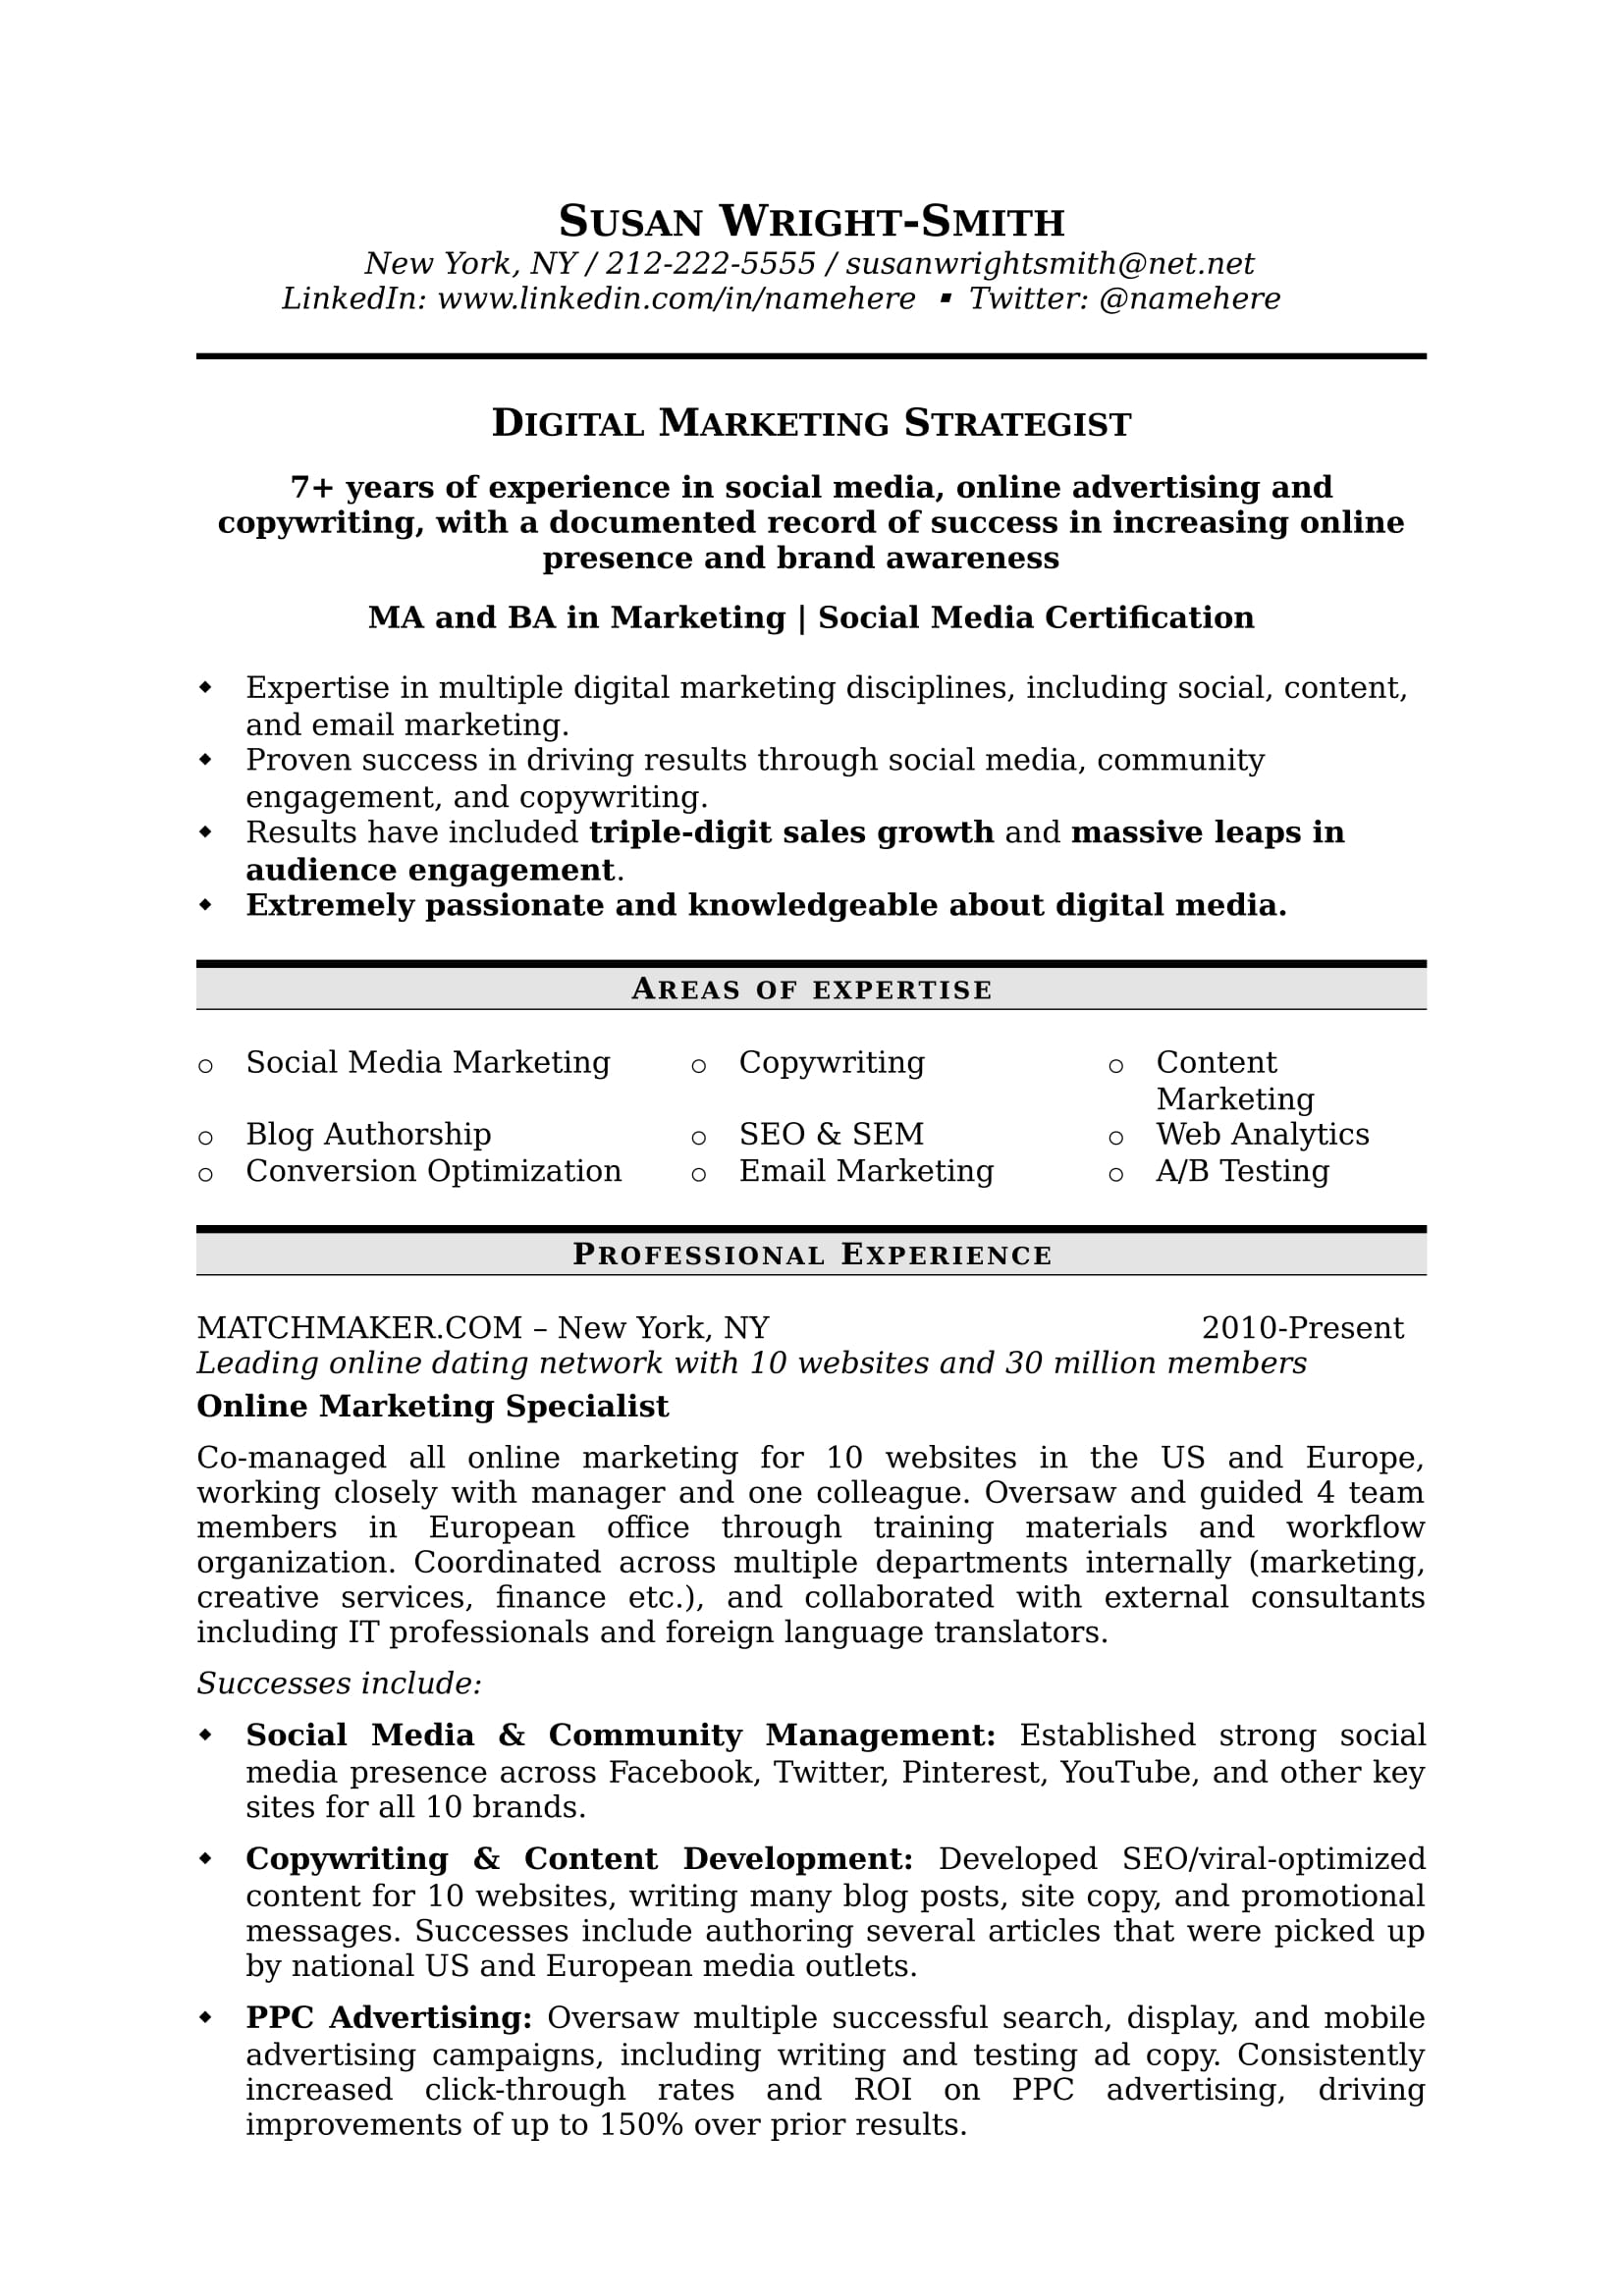 to write marketing resume hiring managers notice free templates samples student digital Resume Marketing Student Resume